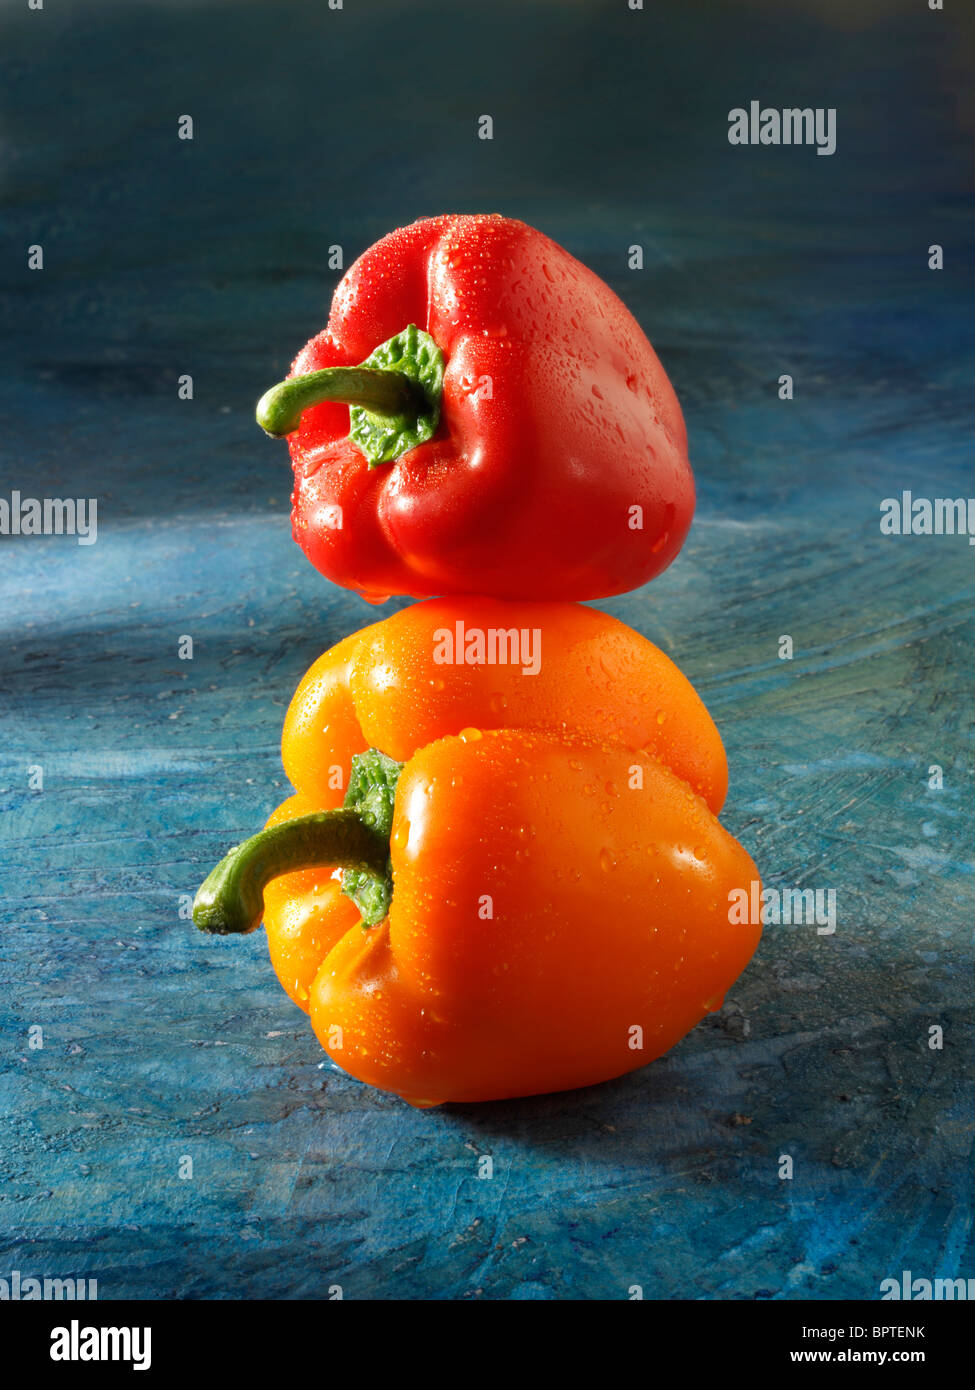 Mixed red & orange fresh bell peppers photos, pictures & images - Stock Image